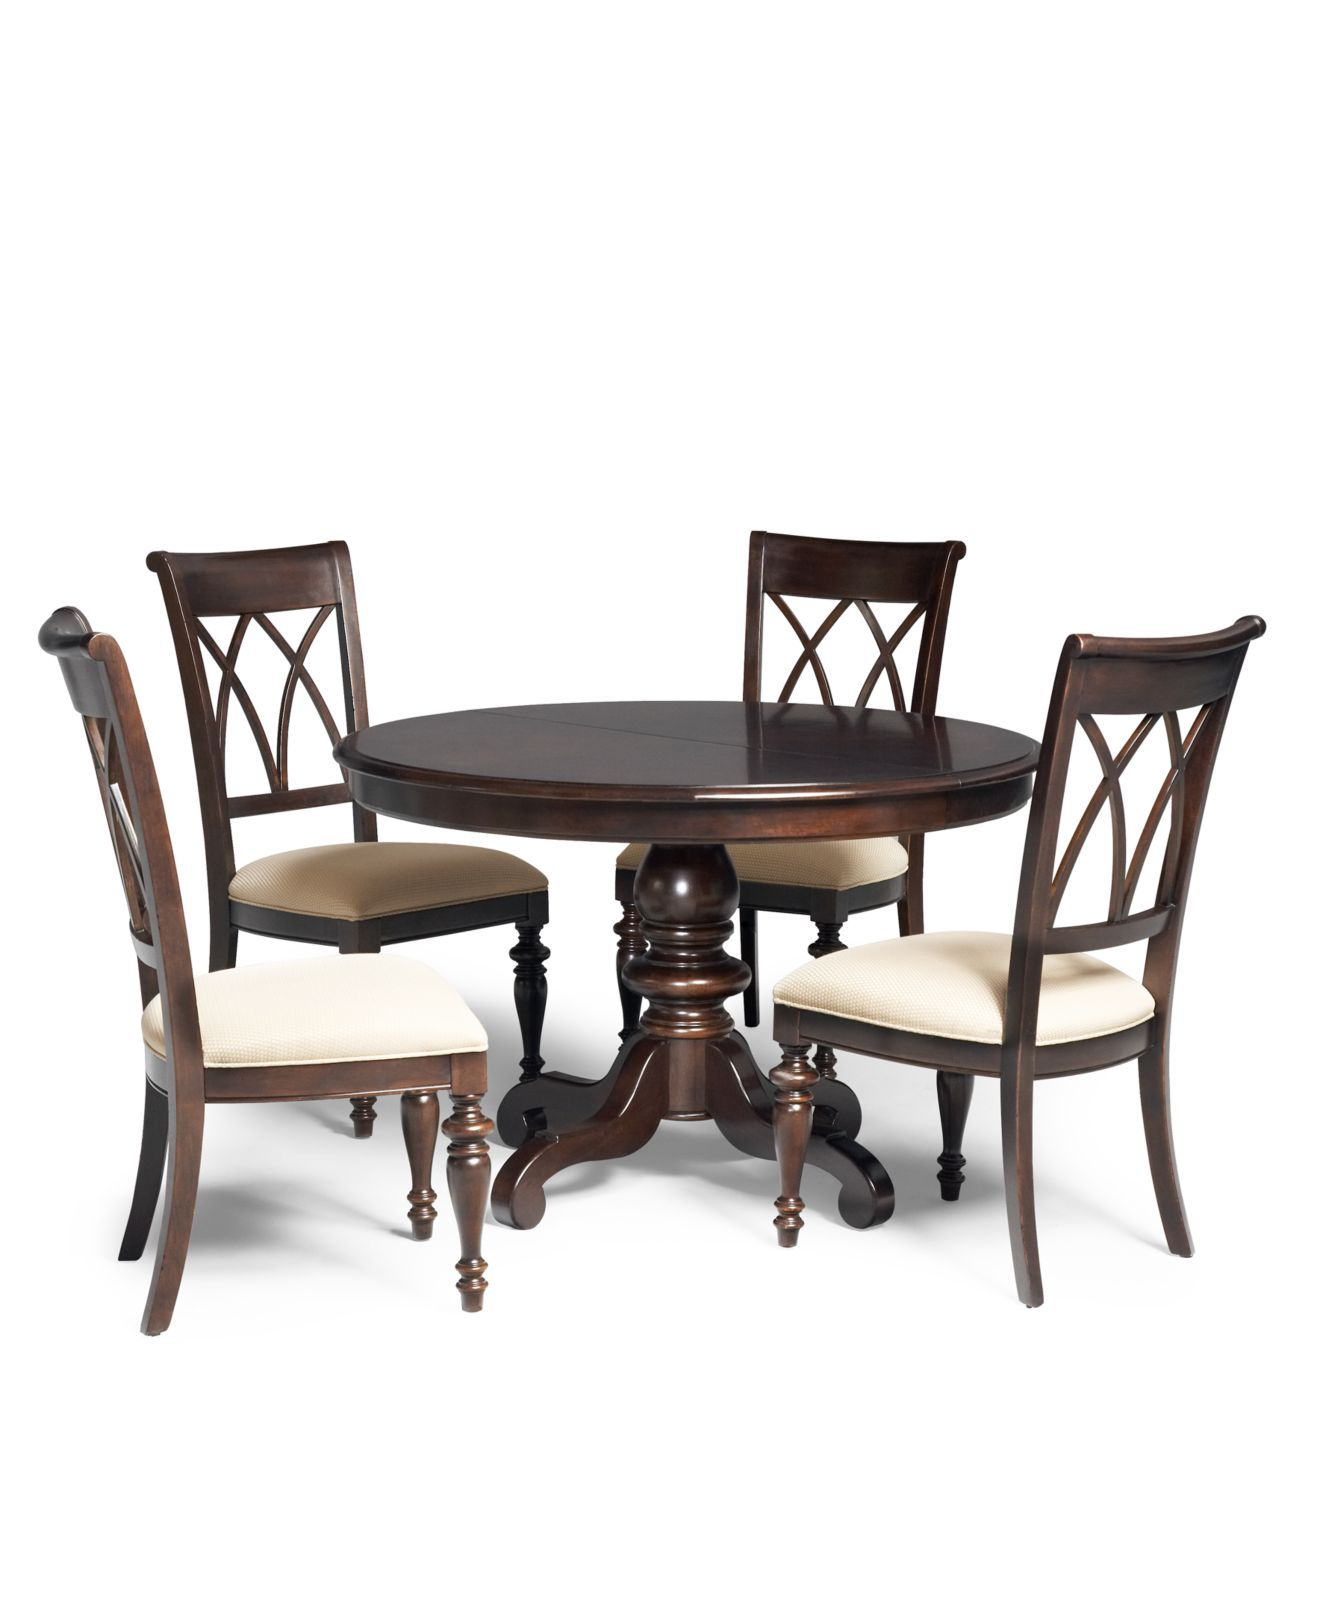 Bradford Dining Room Furniture, 5 Piece Set (Round Table And 4 Side Chairs) Idea